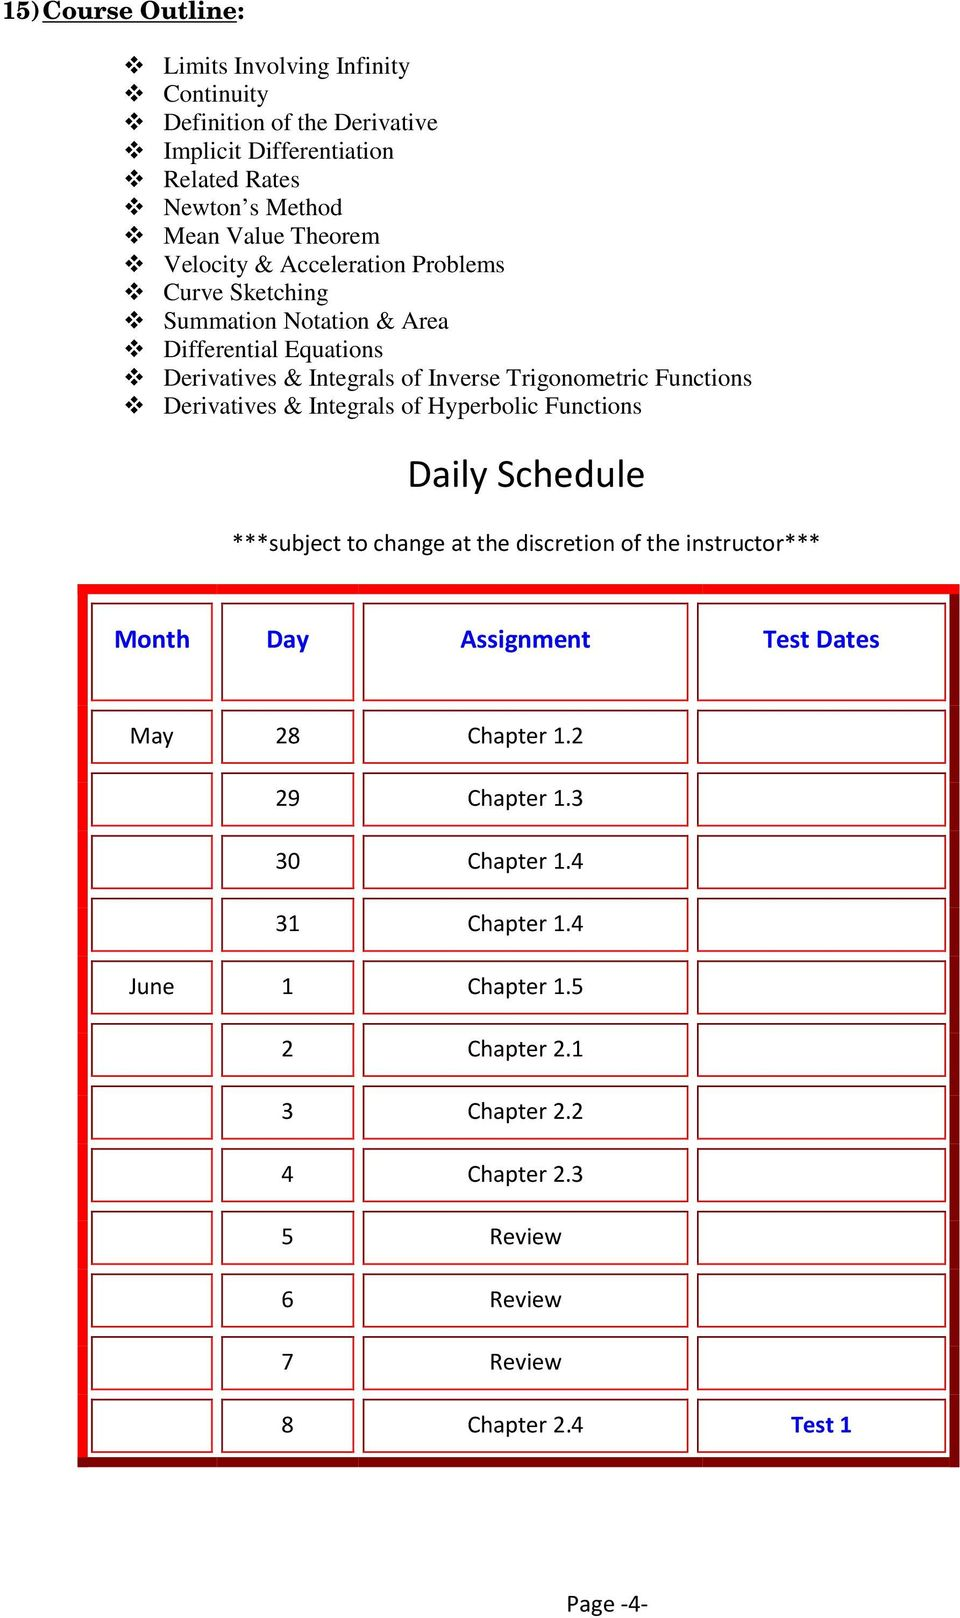 Derivatives & Integrals of Hyperbolic Functions Daily Schedule ***subject to change at the discretion of the instructor*** Month Day Assignment Test Dates May 28